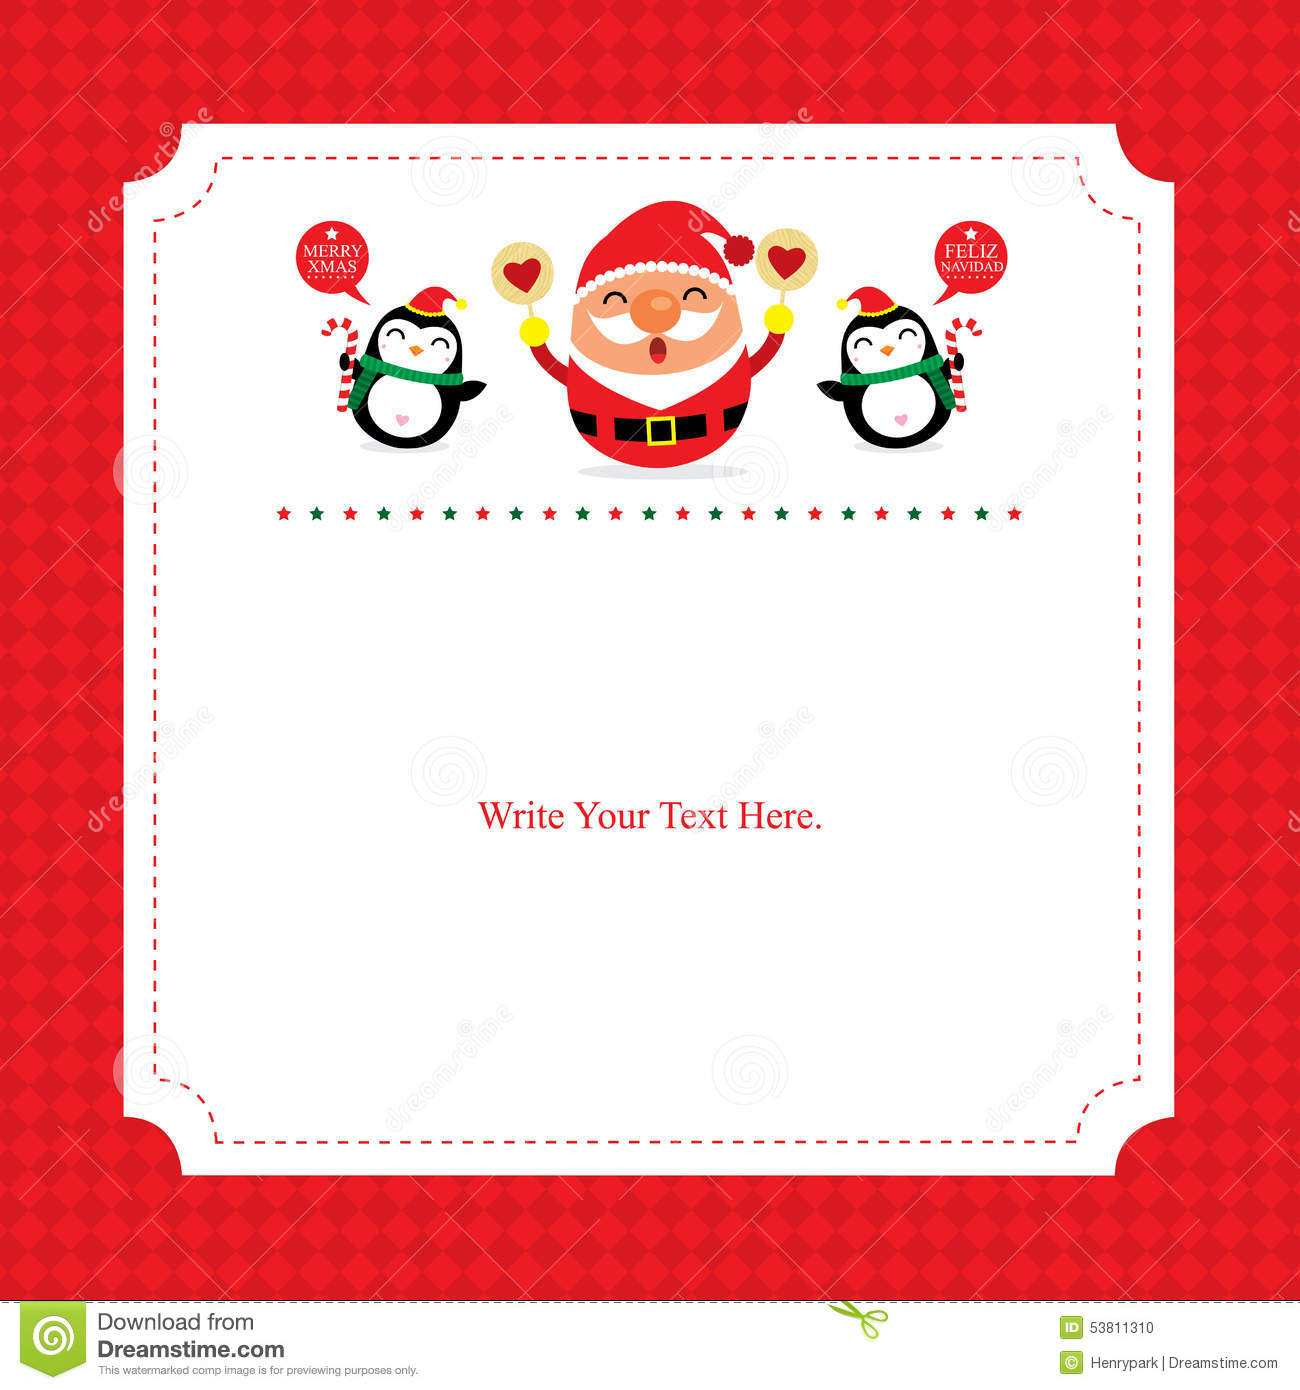 45 Customize Our Free Christmas Card Template Design in Photoshop for Christmas Card Template Design